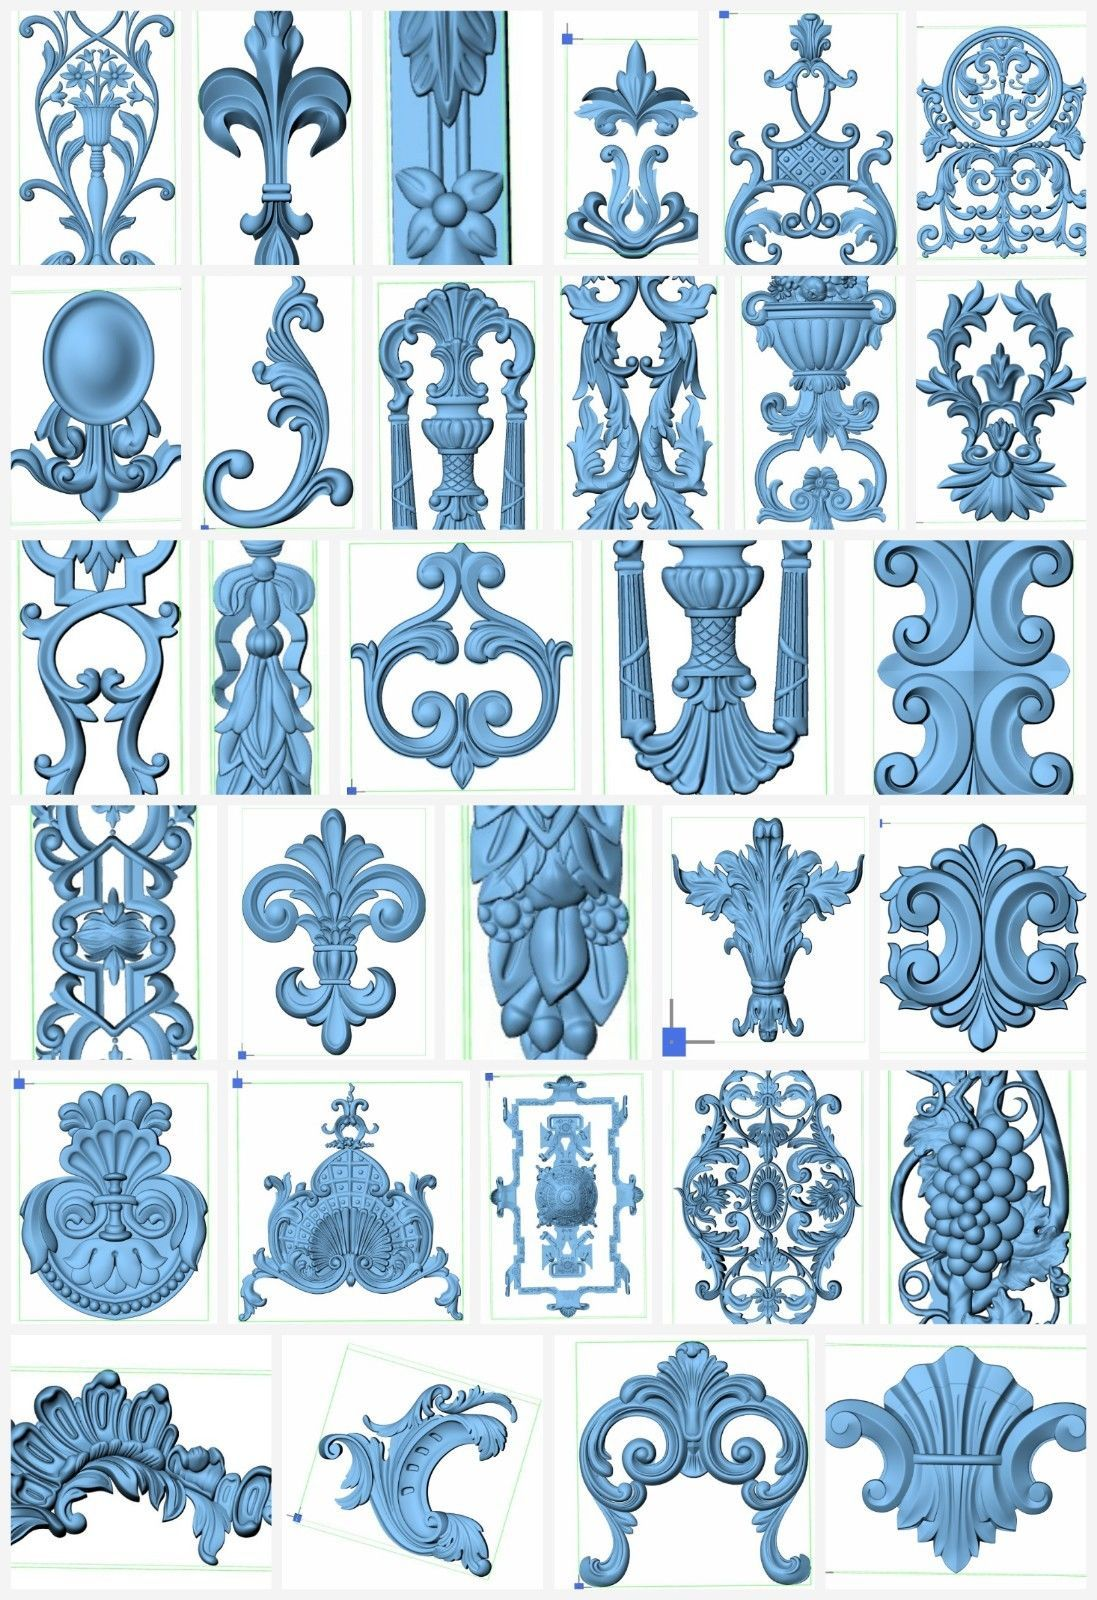 More than 50+ 3d STL Models.